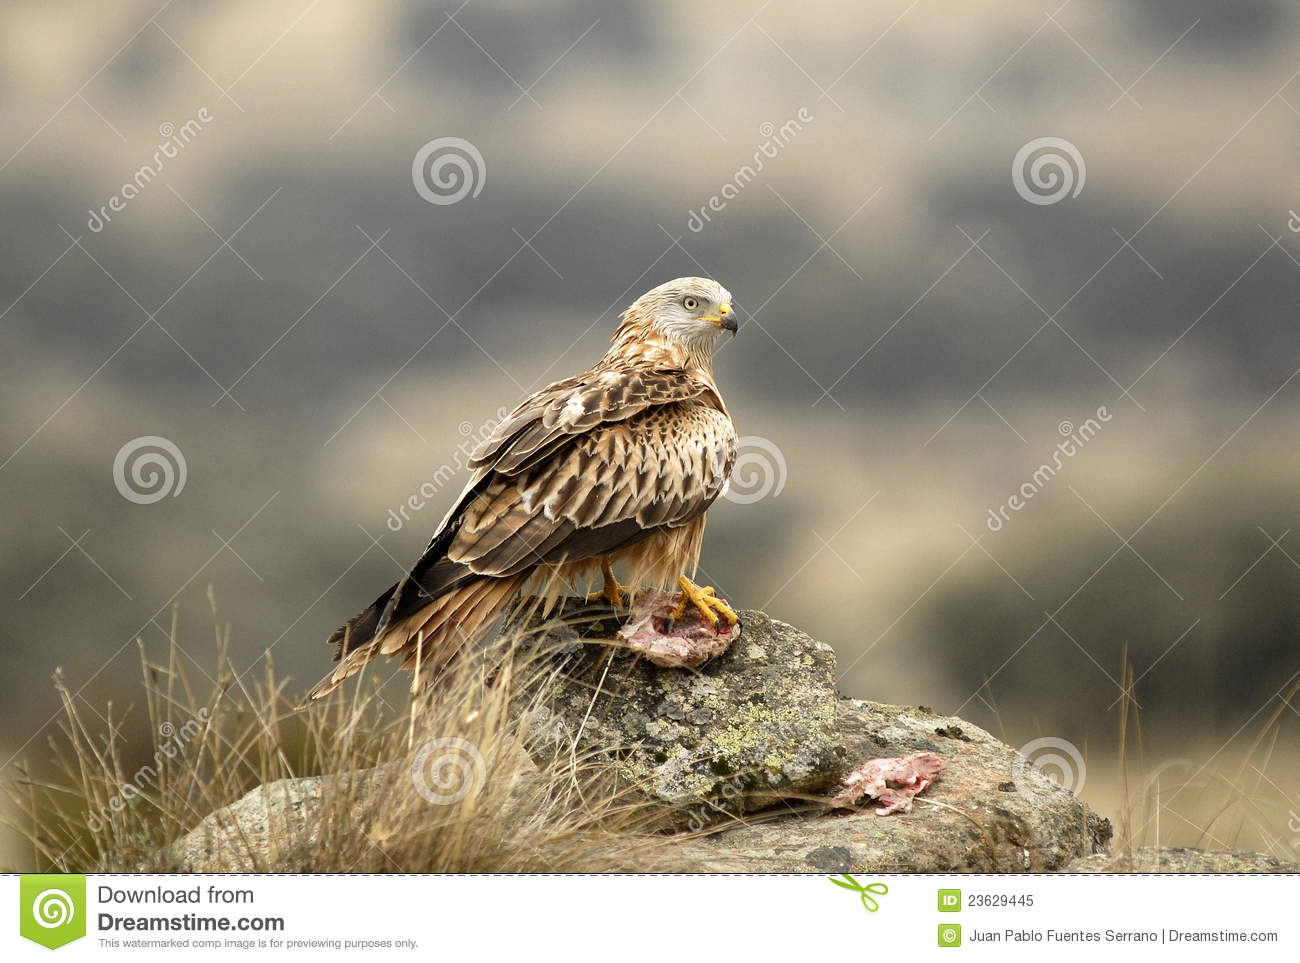 Eagle eating meat - photo#16